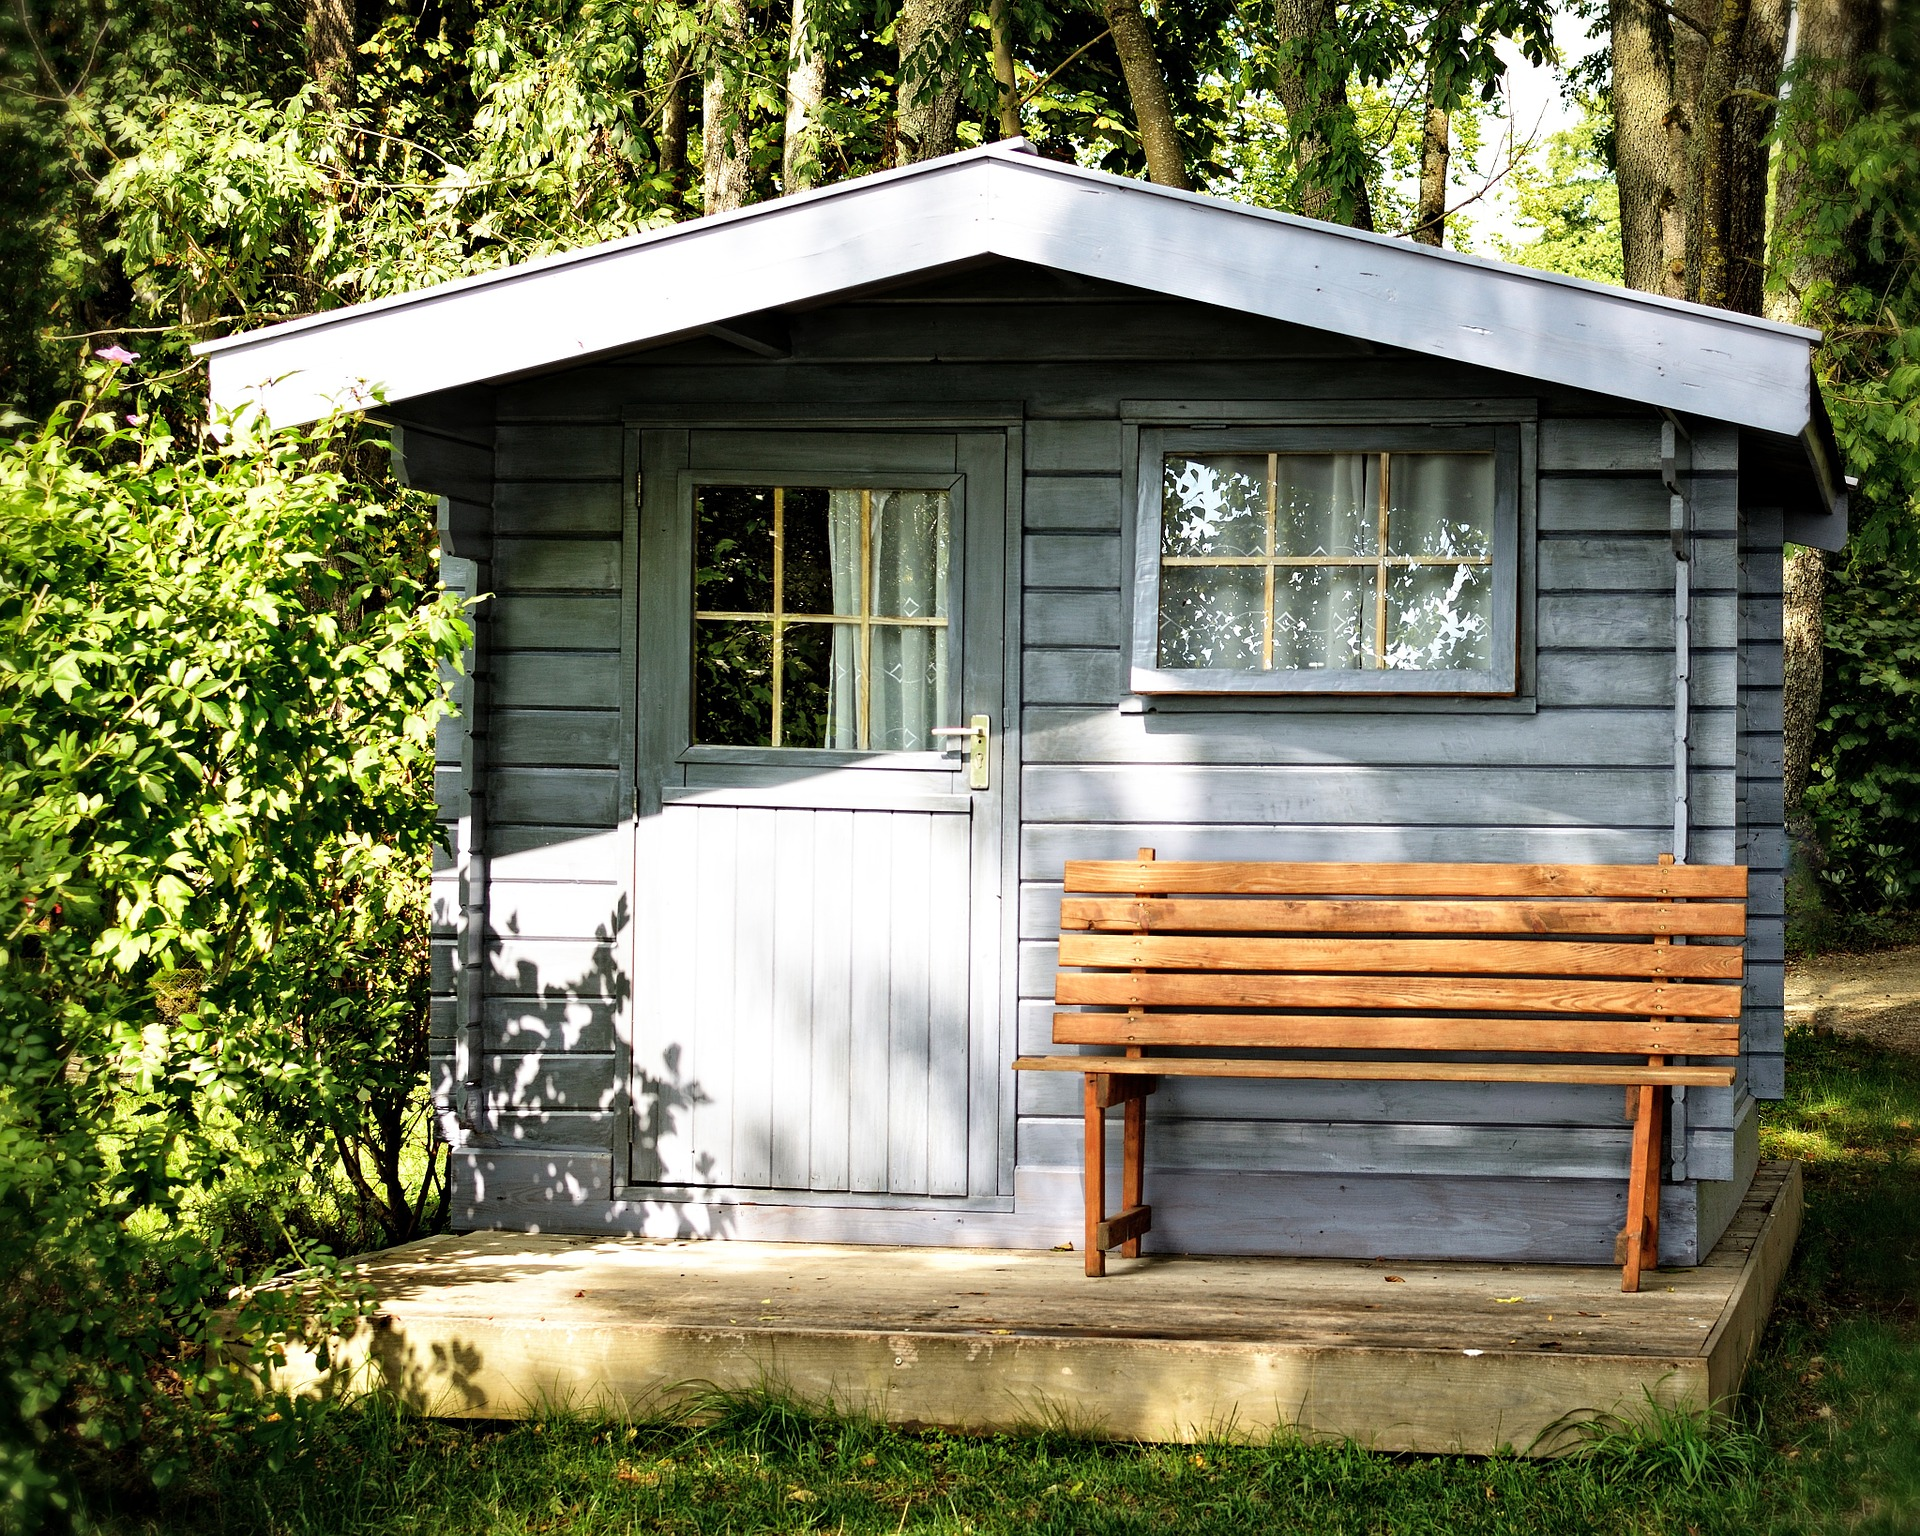 Shed roofing materials which is right for you edecks blog - Abris de jardin en bois castorama ...